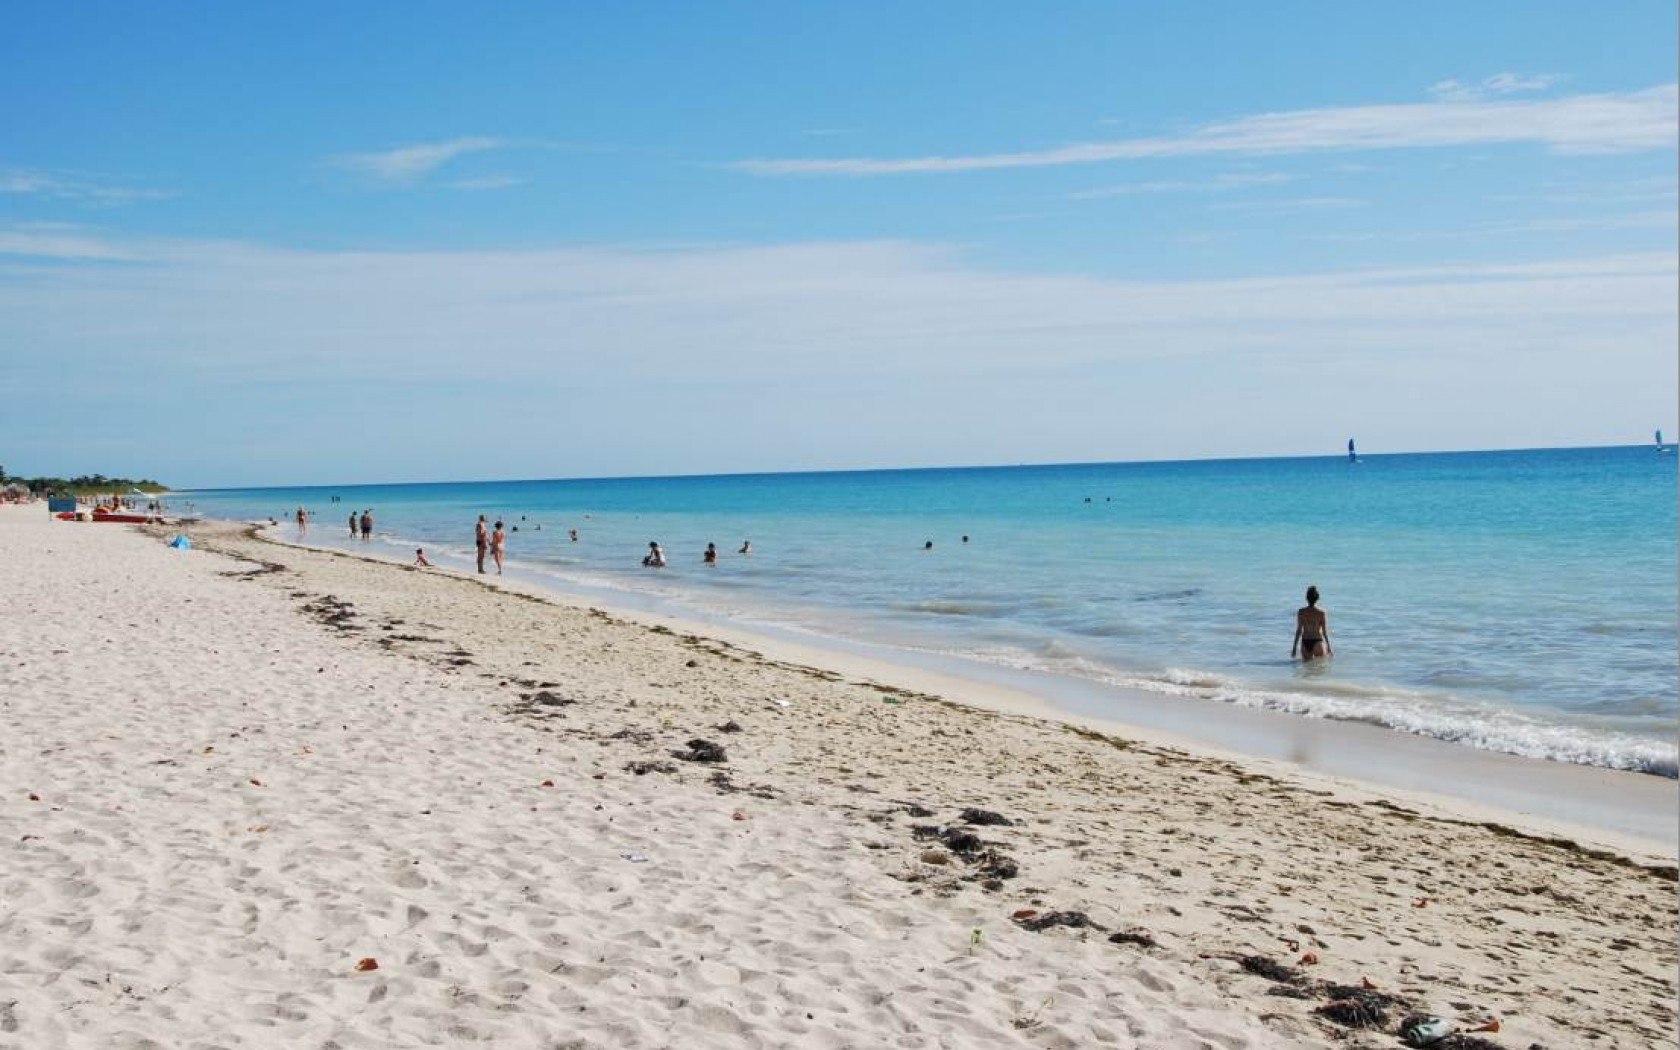 Playa Ancon à Cuba: la plus belle du sud du pays